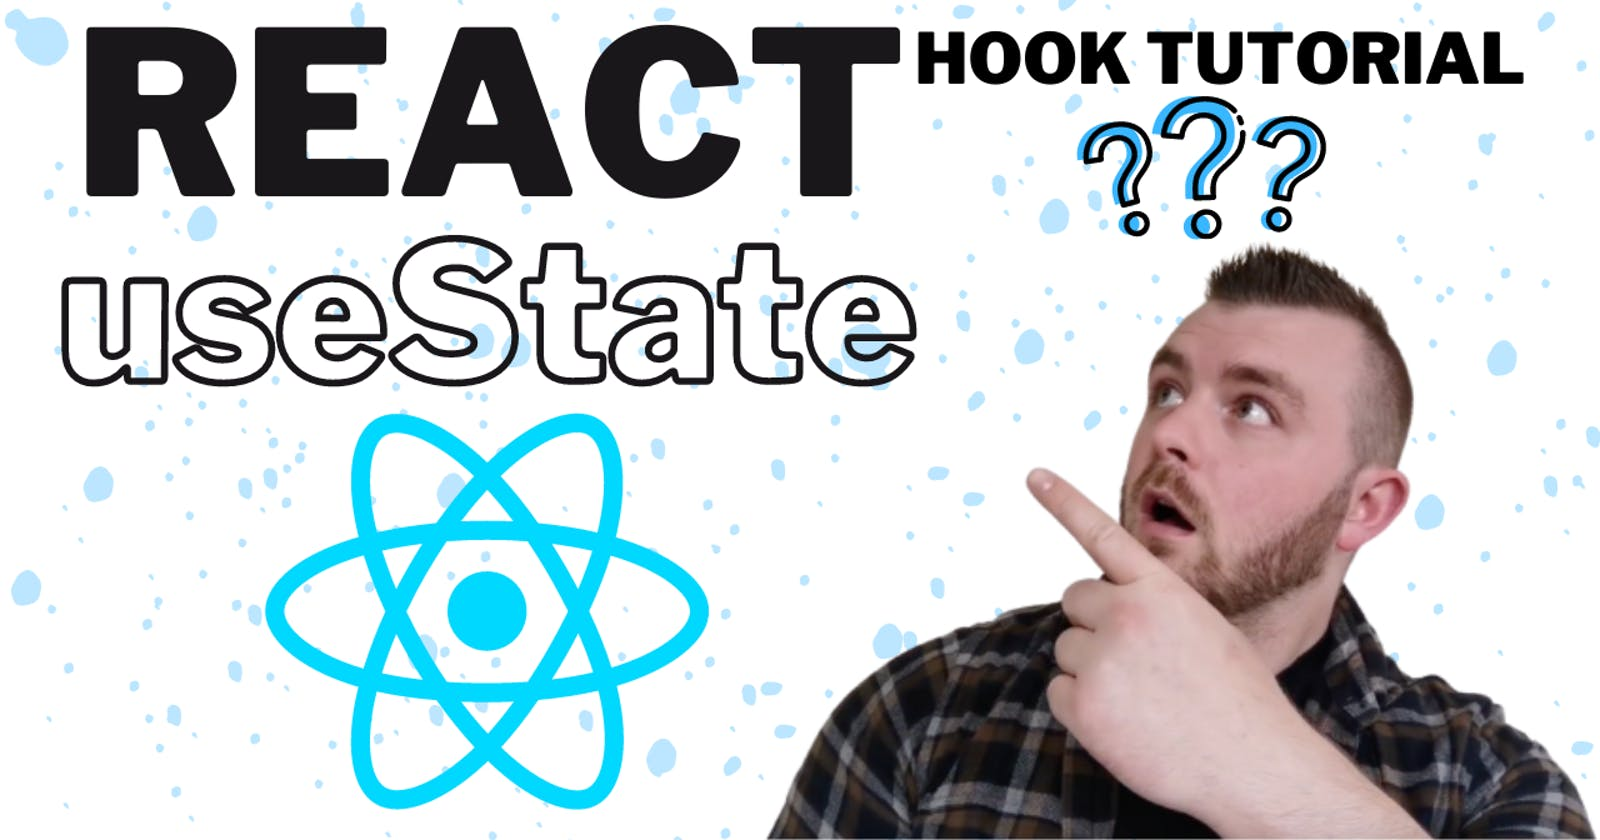 How to use the useState hook in React